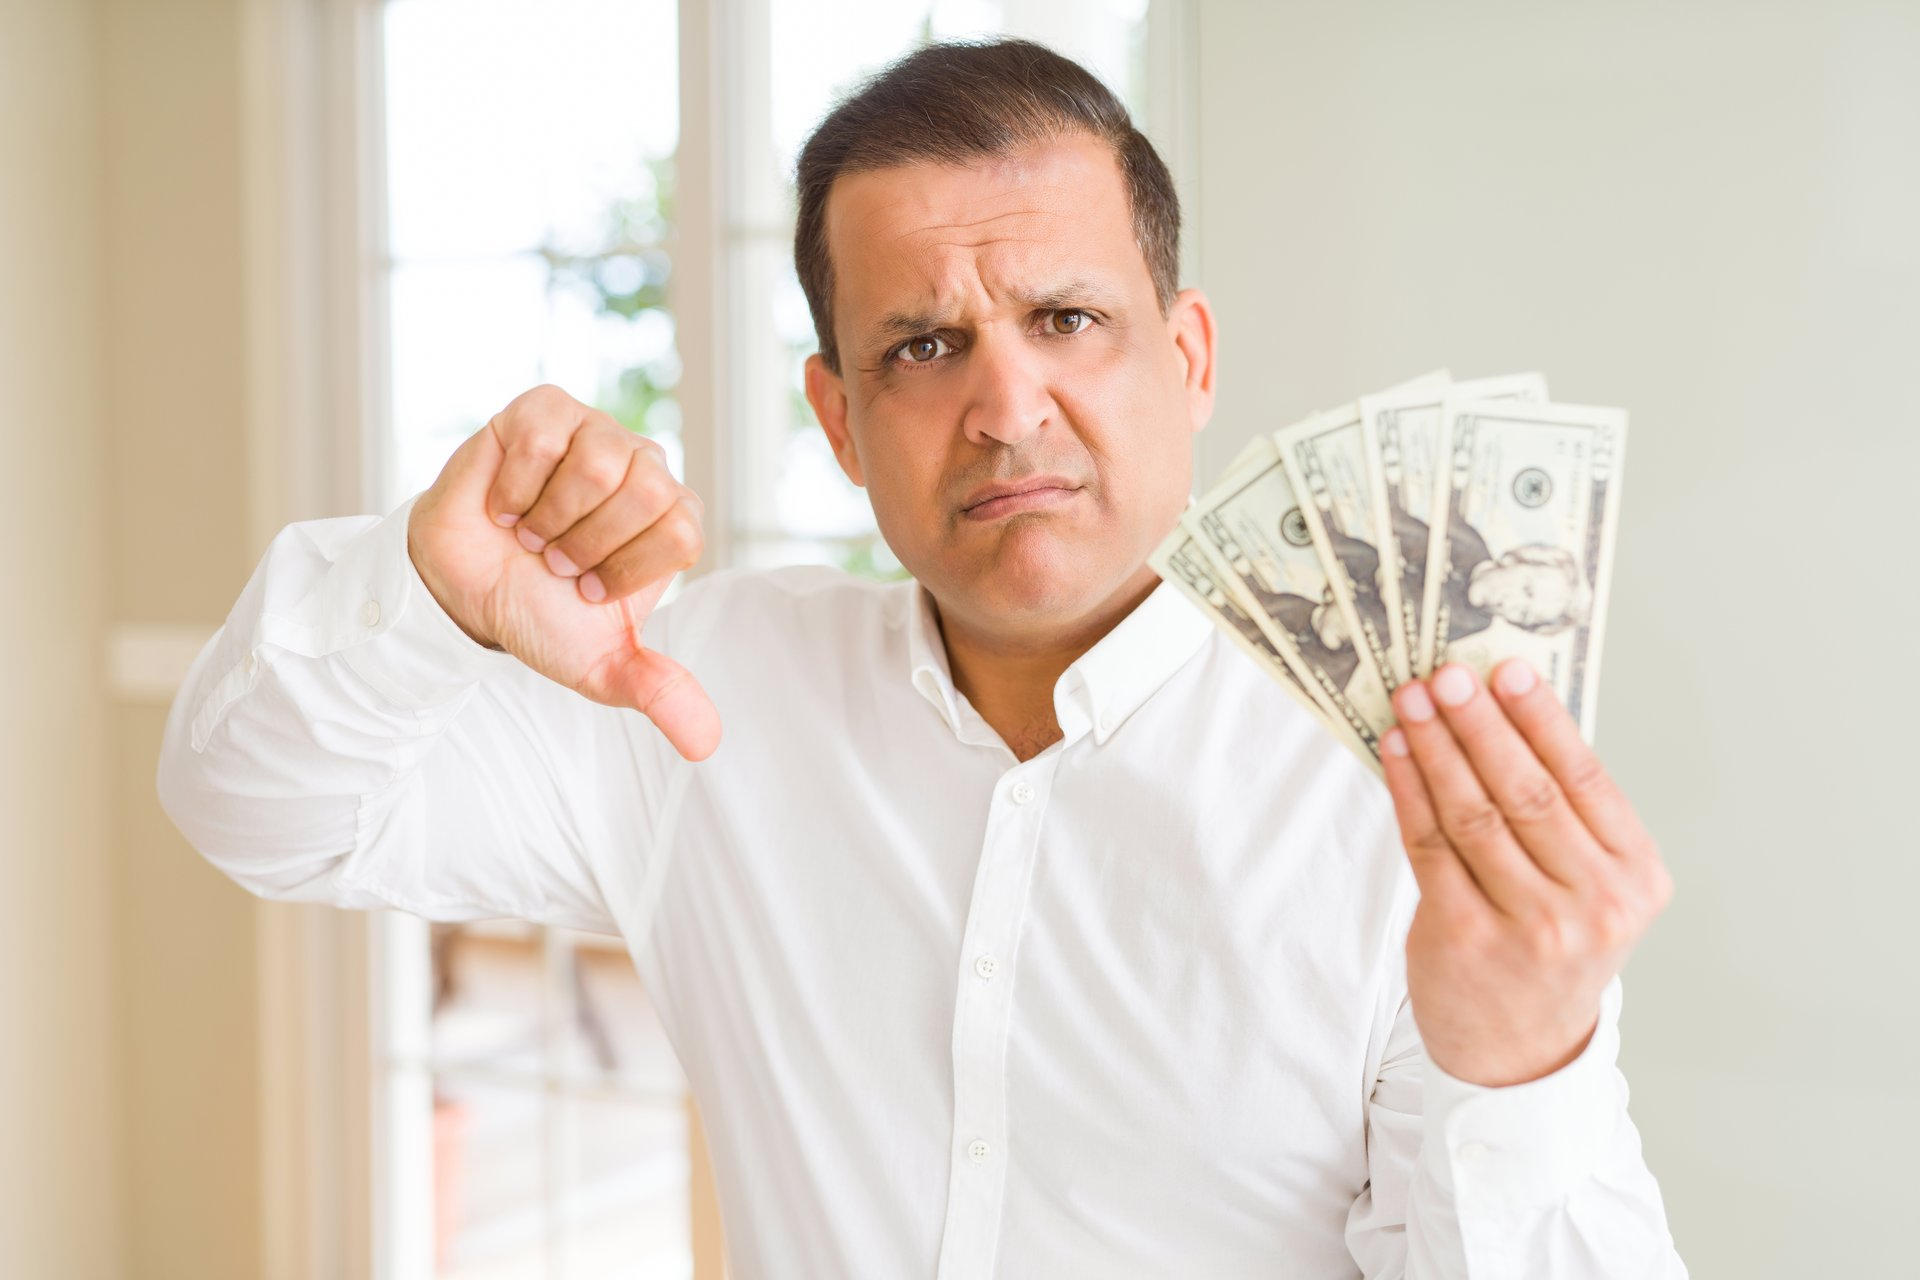 Angry man with money